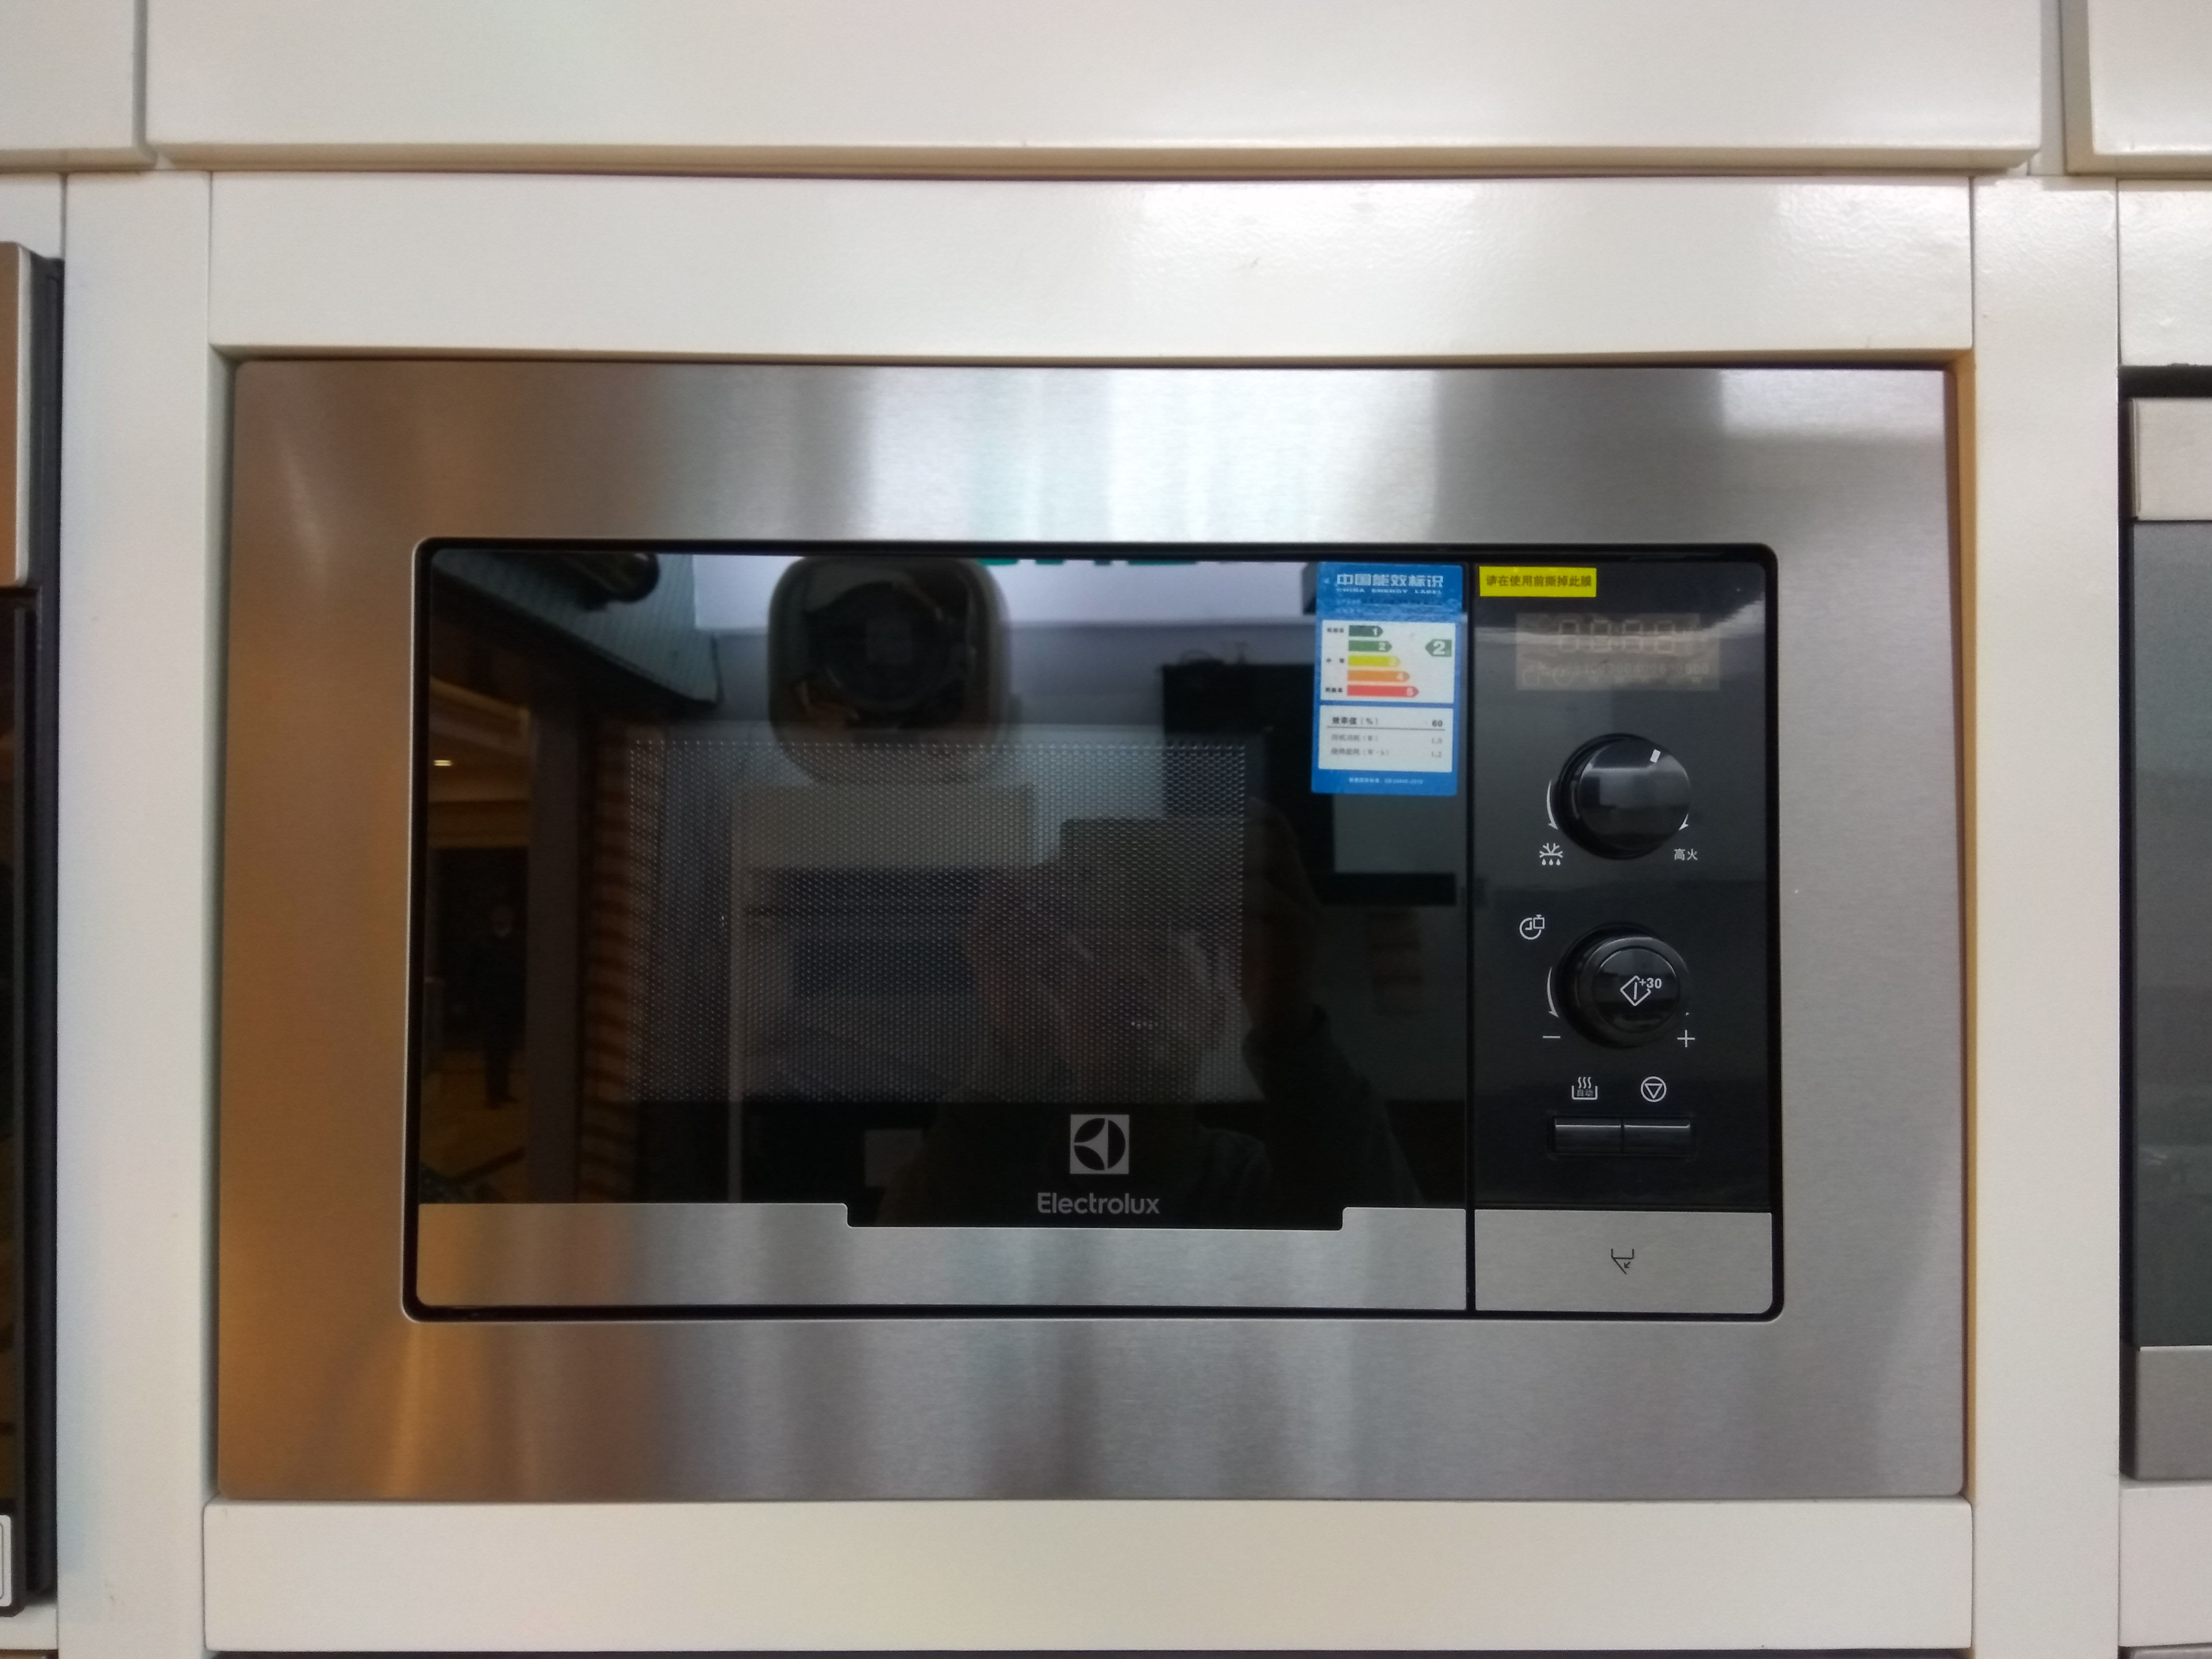 Electrolux ems2085x embedded microwave oven ems2029x built in microwave oven